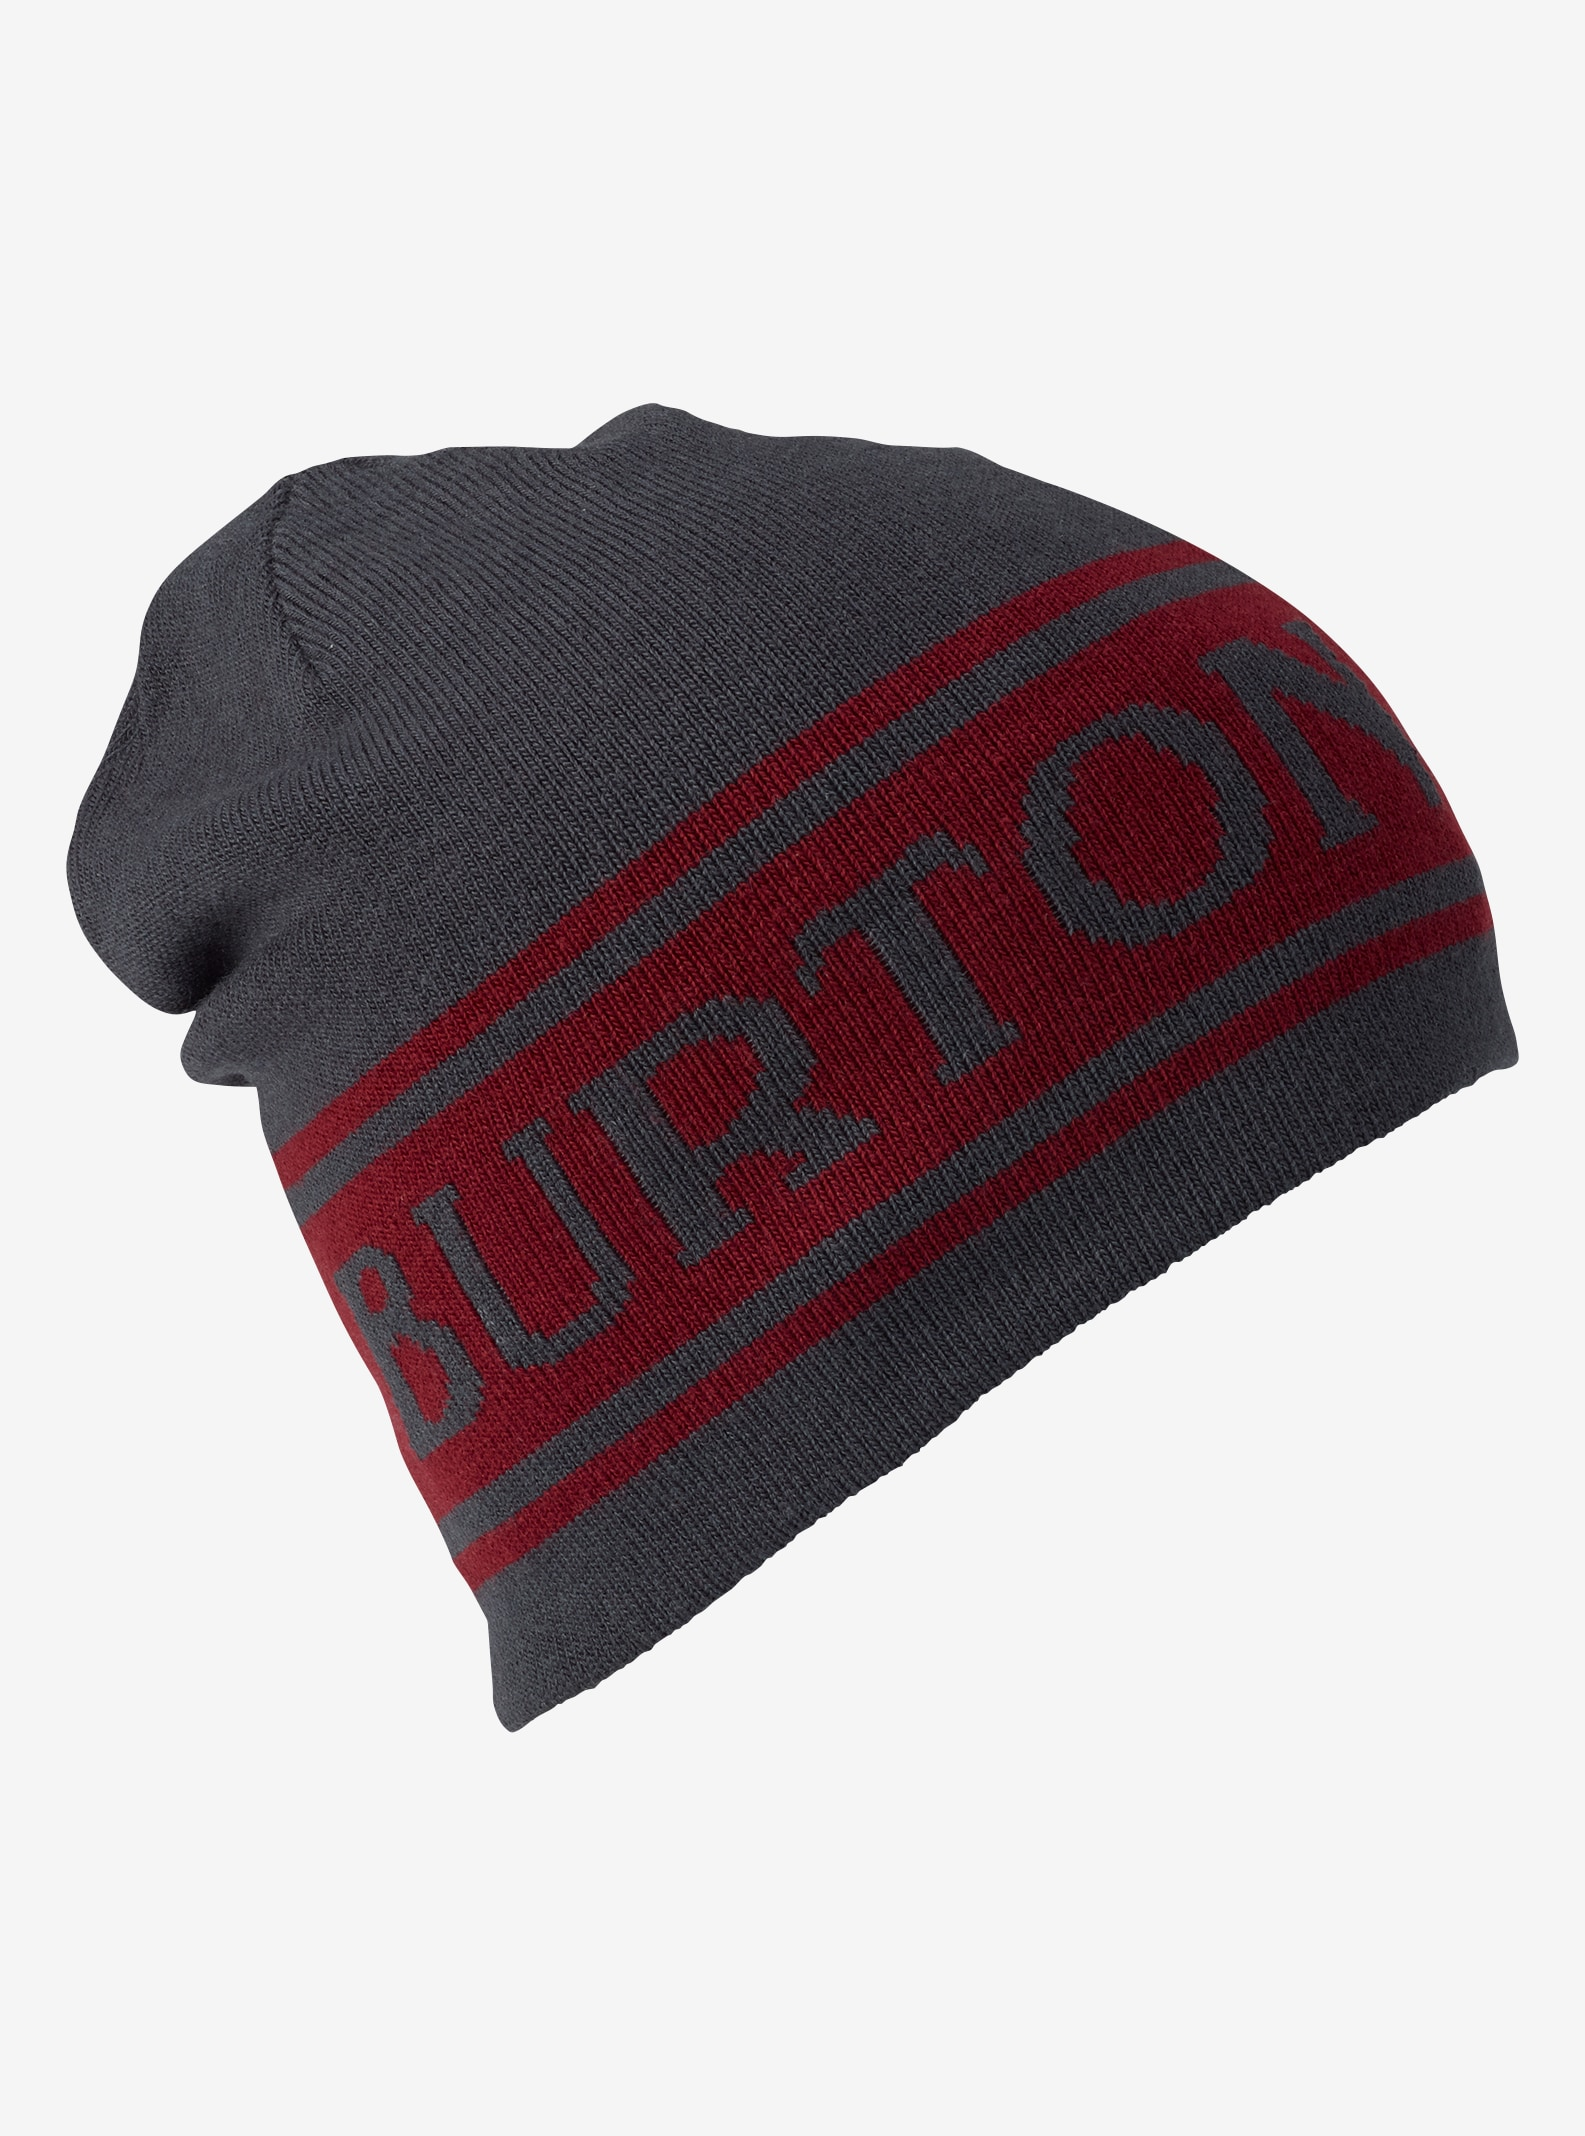 Burton Billboard Beanie - Reversible shown in Faded / Fired Brick